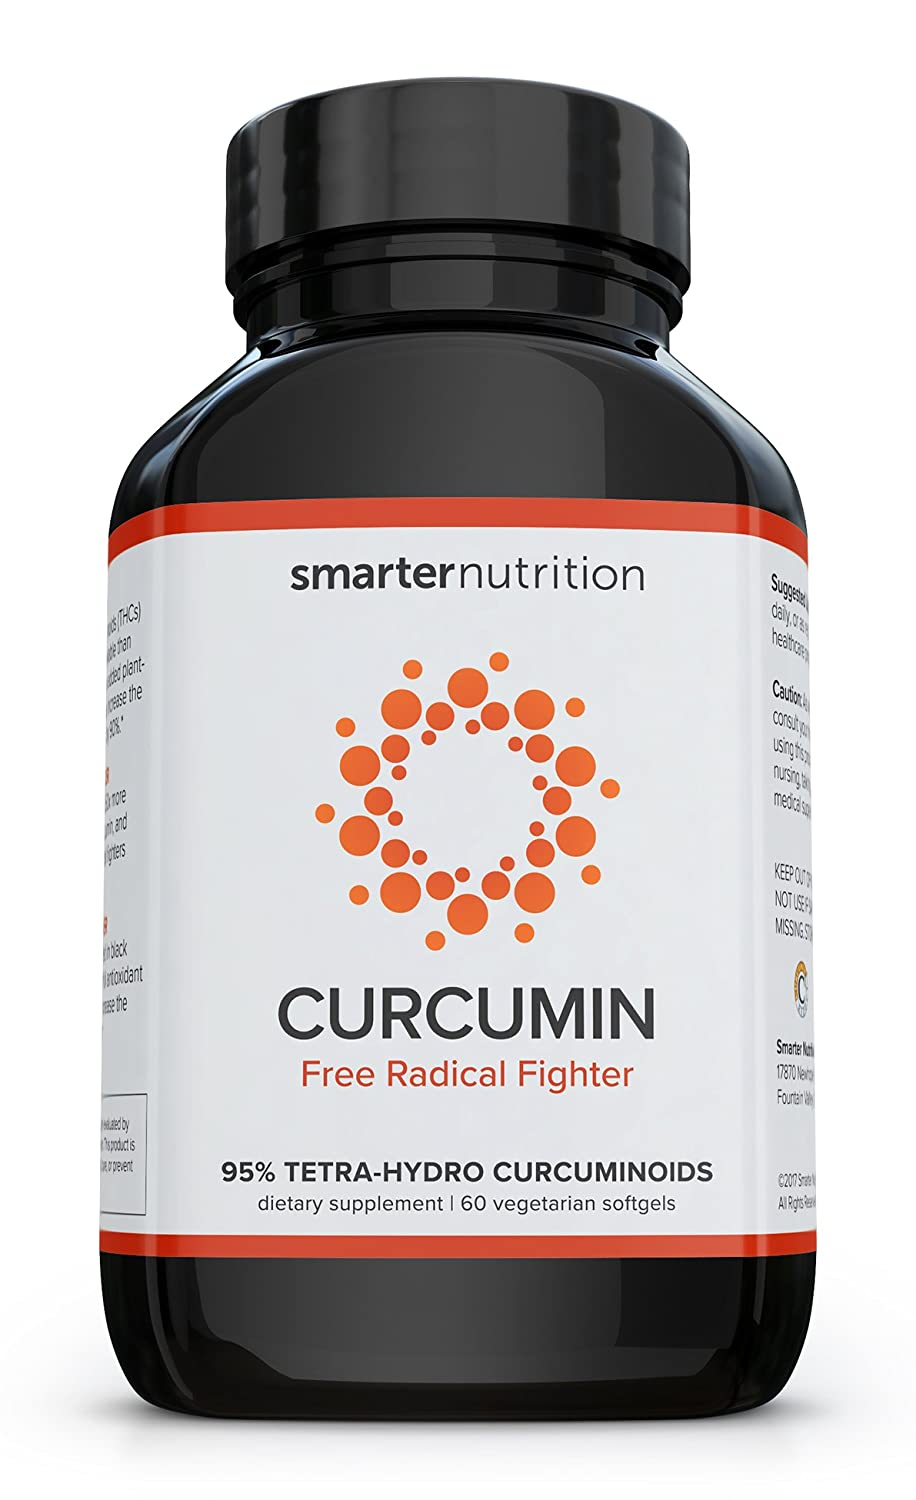 Smarter Turmeric Curcumin – Potency and Absorption in a SoftGel The Most Active Form of Curcuminoid Found in the Turmeric Root 95 Tetra-Hydro Curcuminoids 180 Count – 3 Month Supply